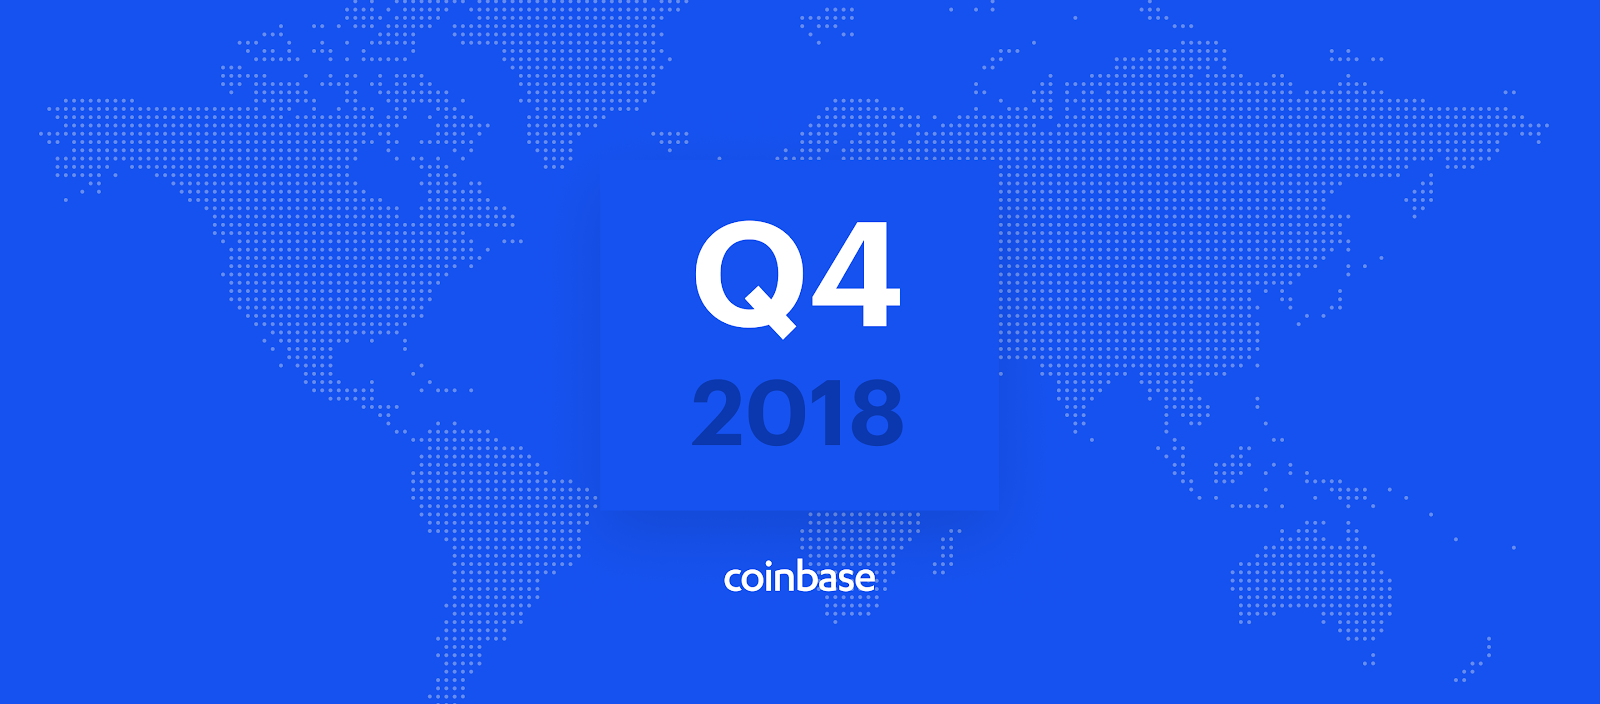 What we accomplished at Coinbase in Q4 2018 - The Coinbase Blog